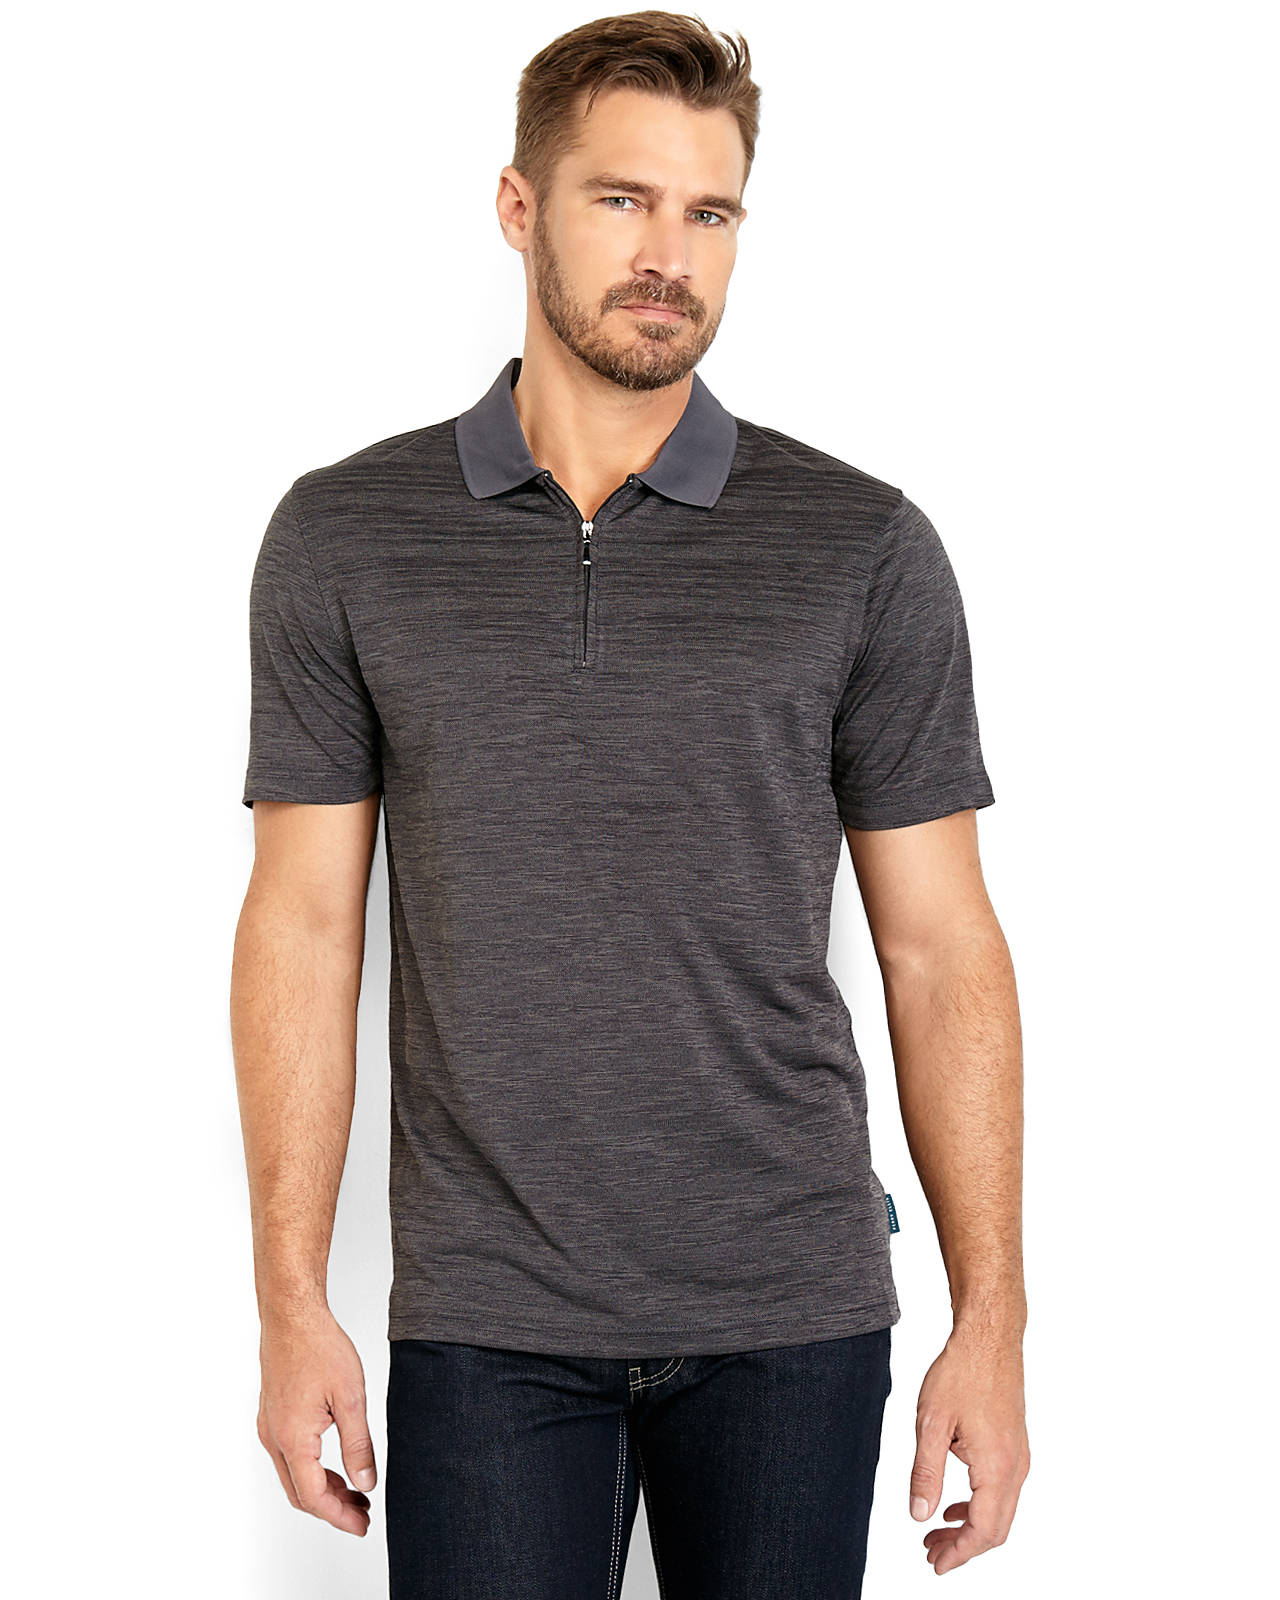 Discount Wide Range Of 2018 Unisex Perry Ellis� Quarter Zip Polo Sale  Excellent Fast Delivery